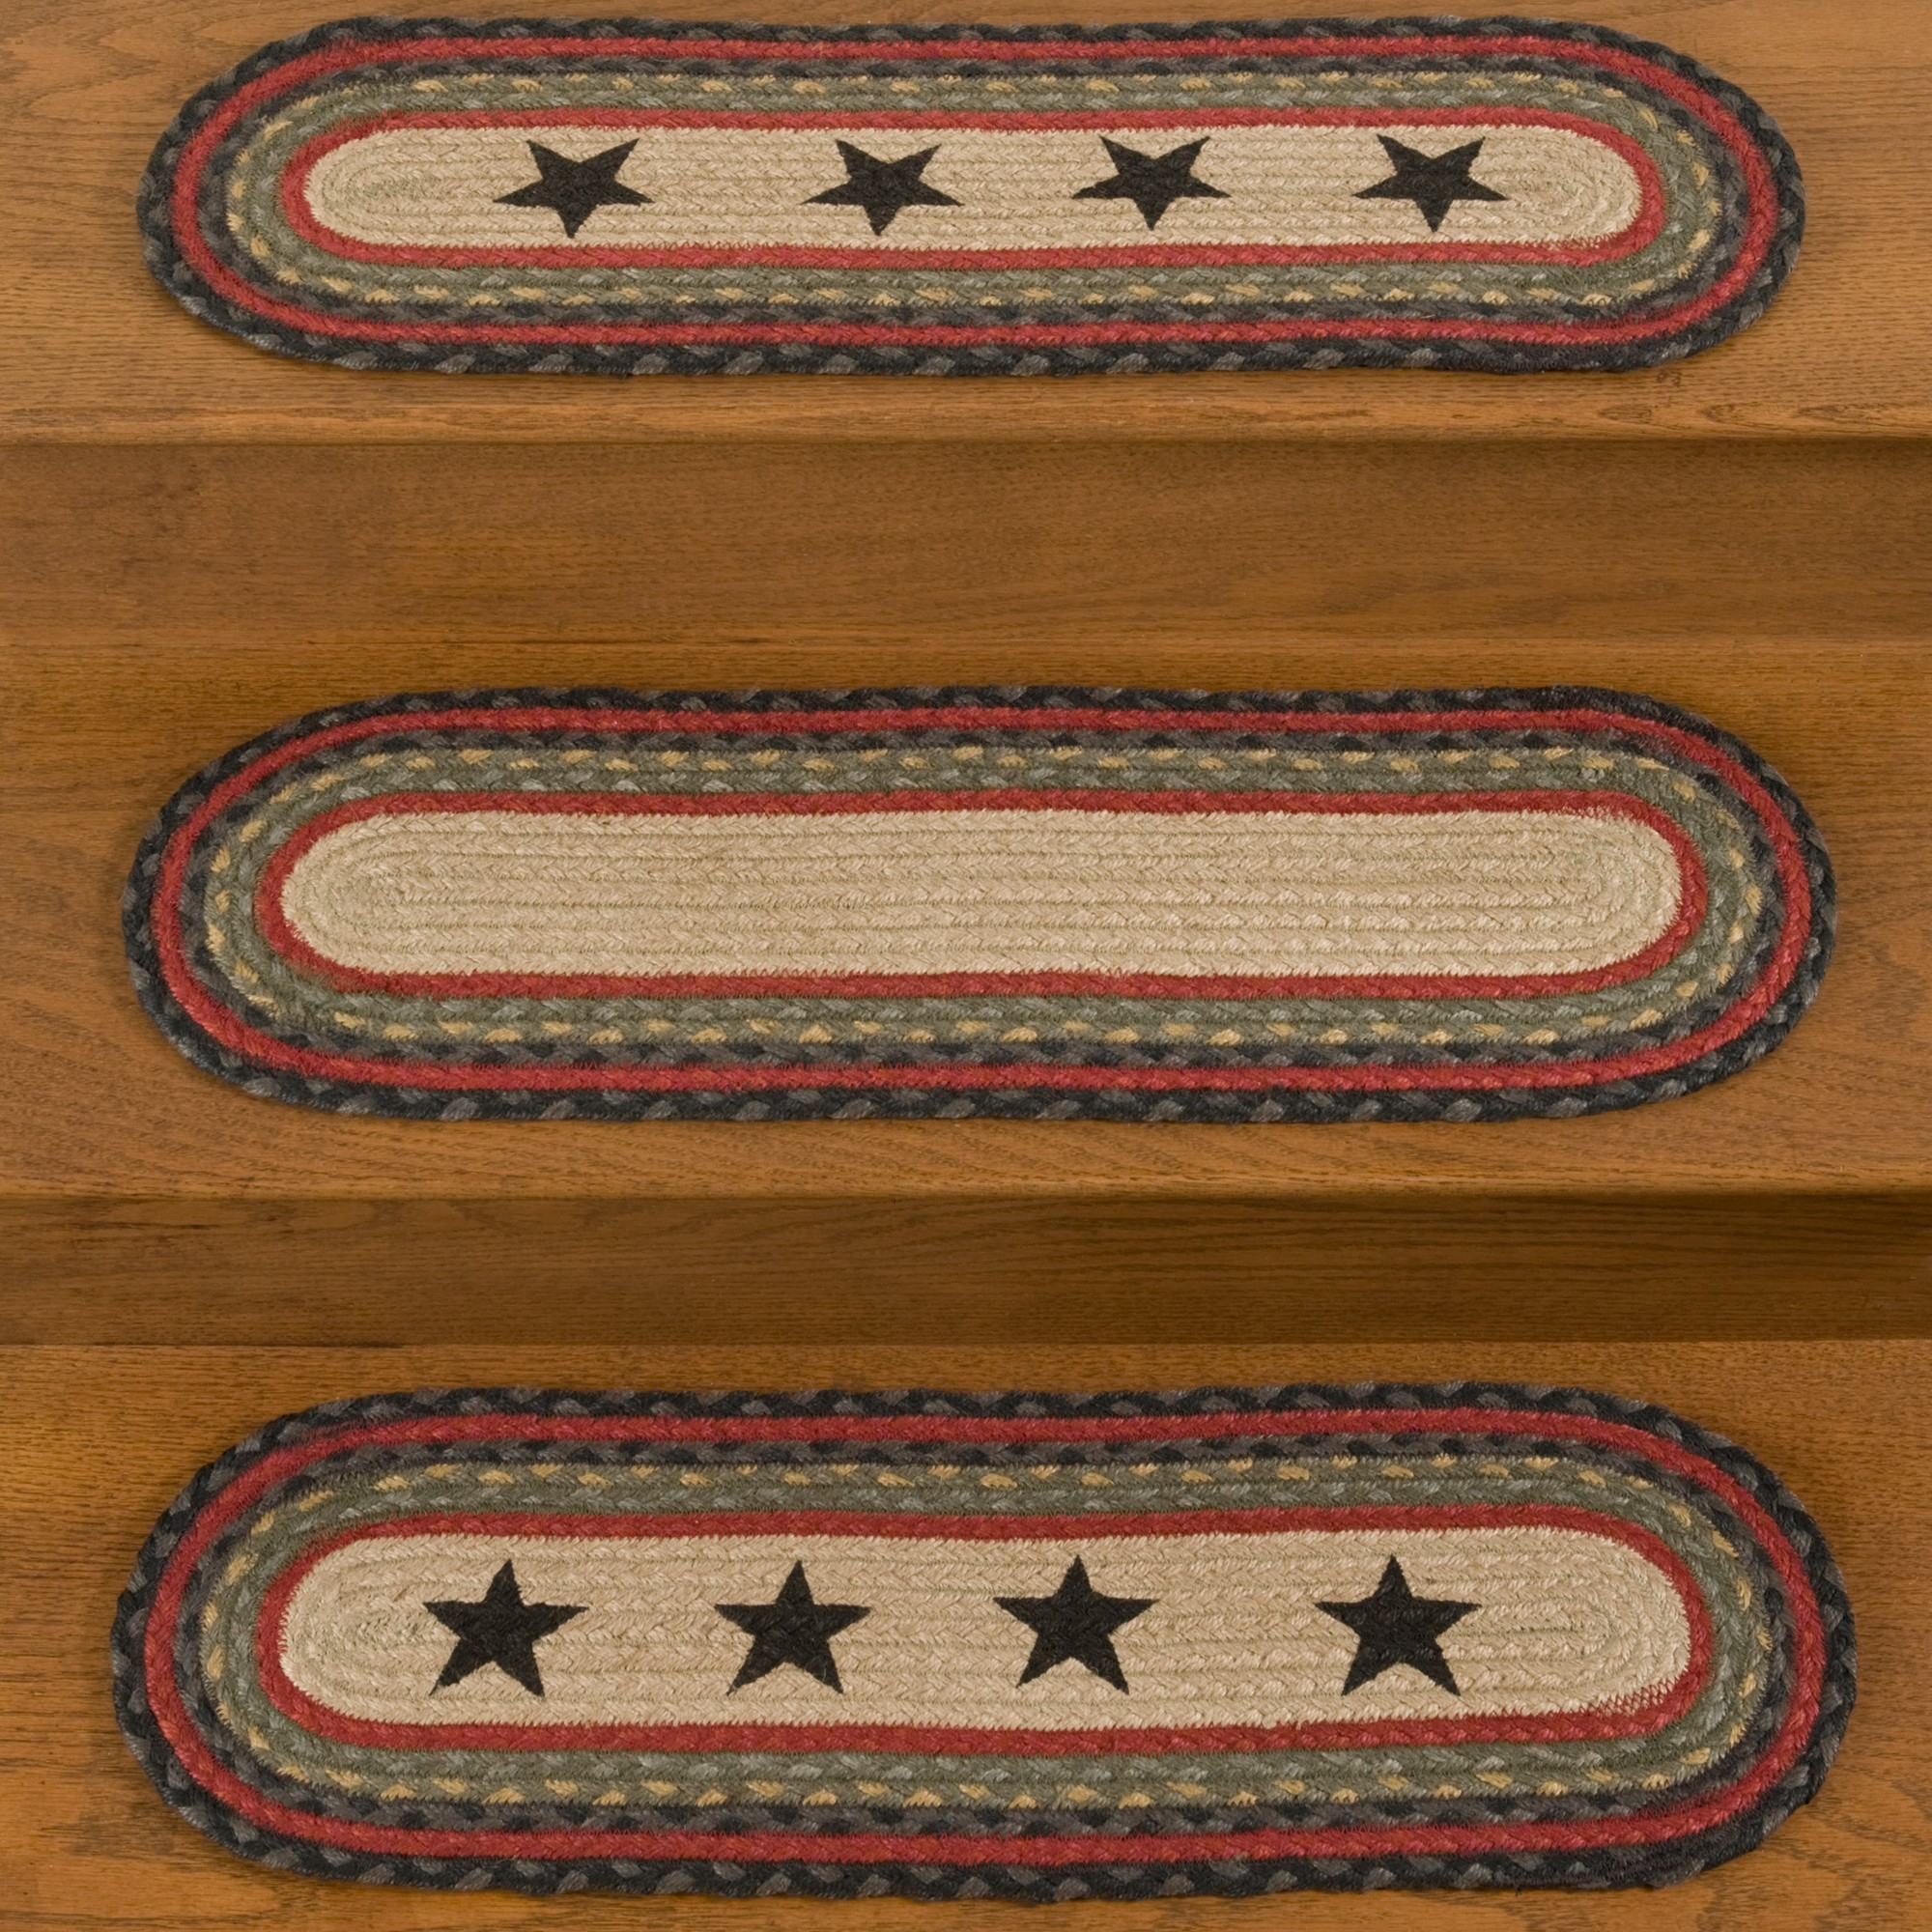 Braided Stair Tread Rugs Roselawnlutheran Throughout Braided Carpet Stair Treads (Image 2 of 15)